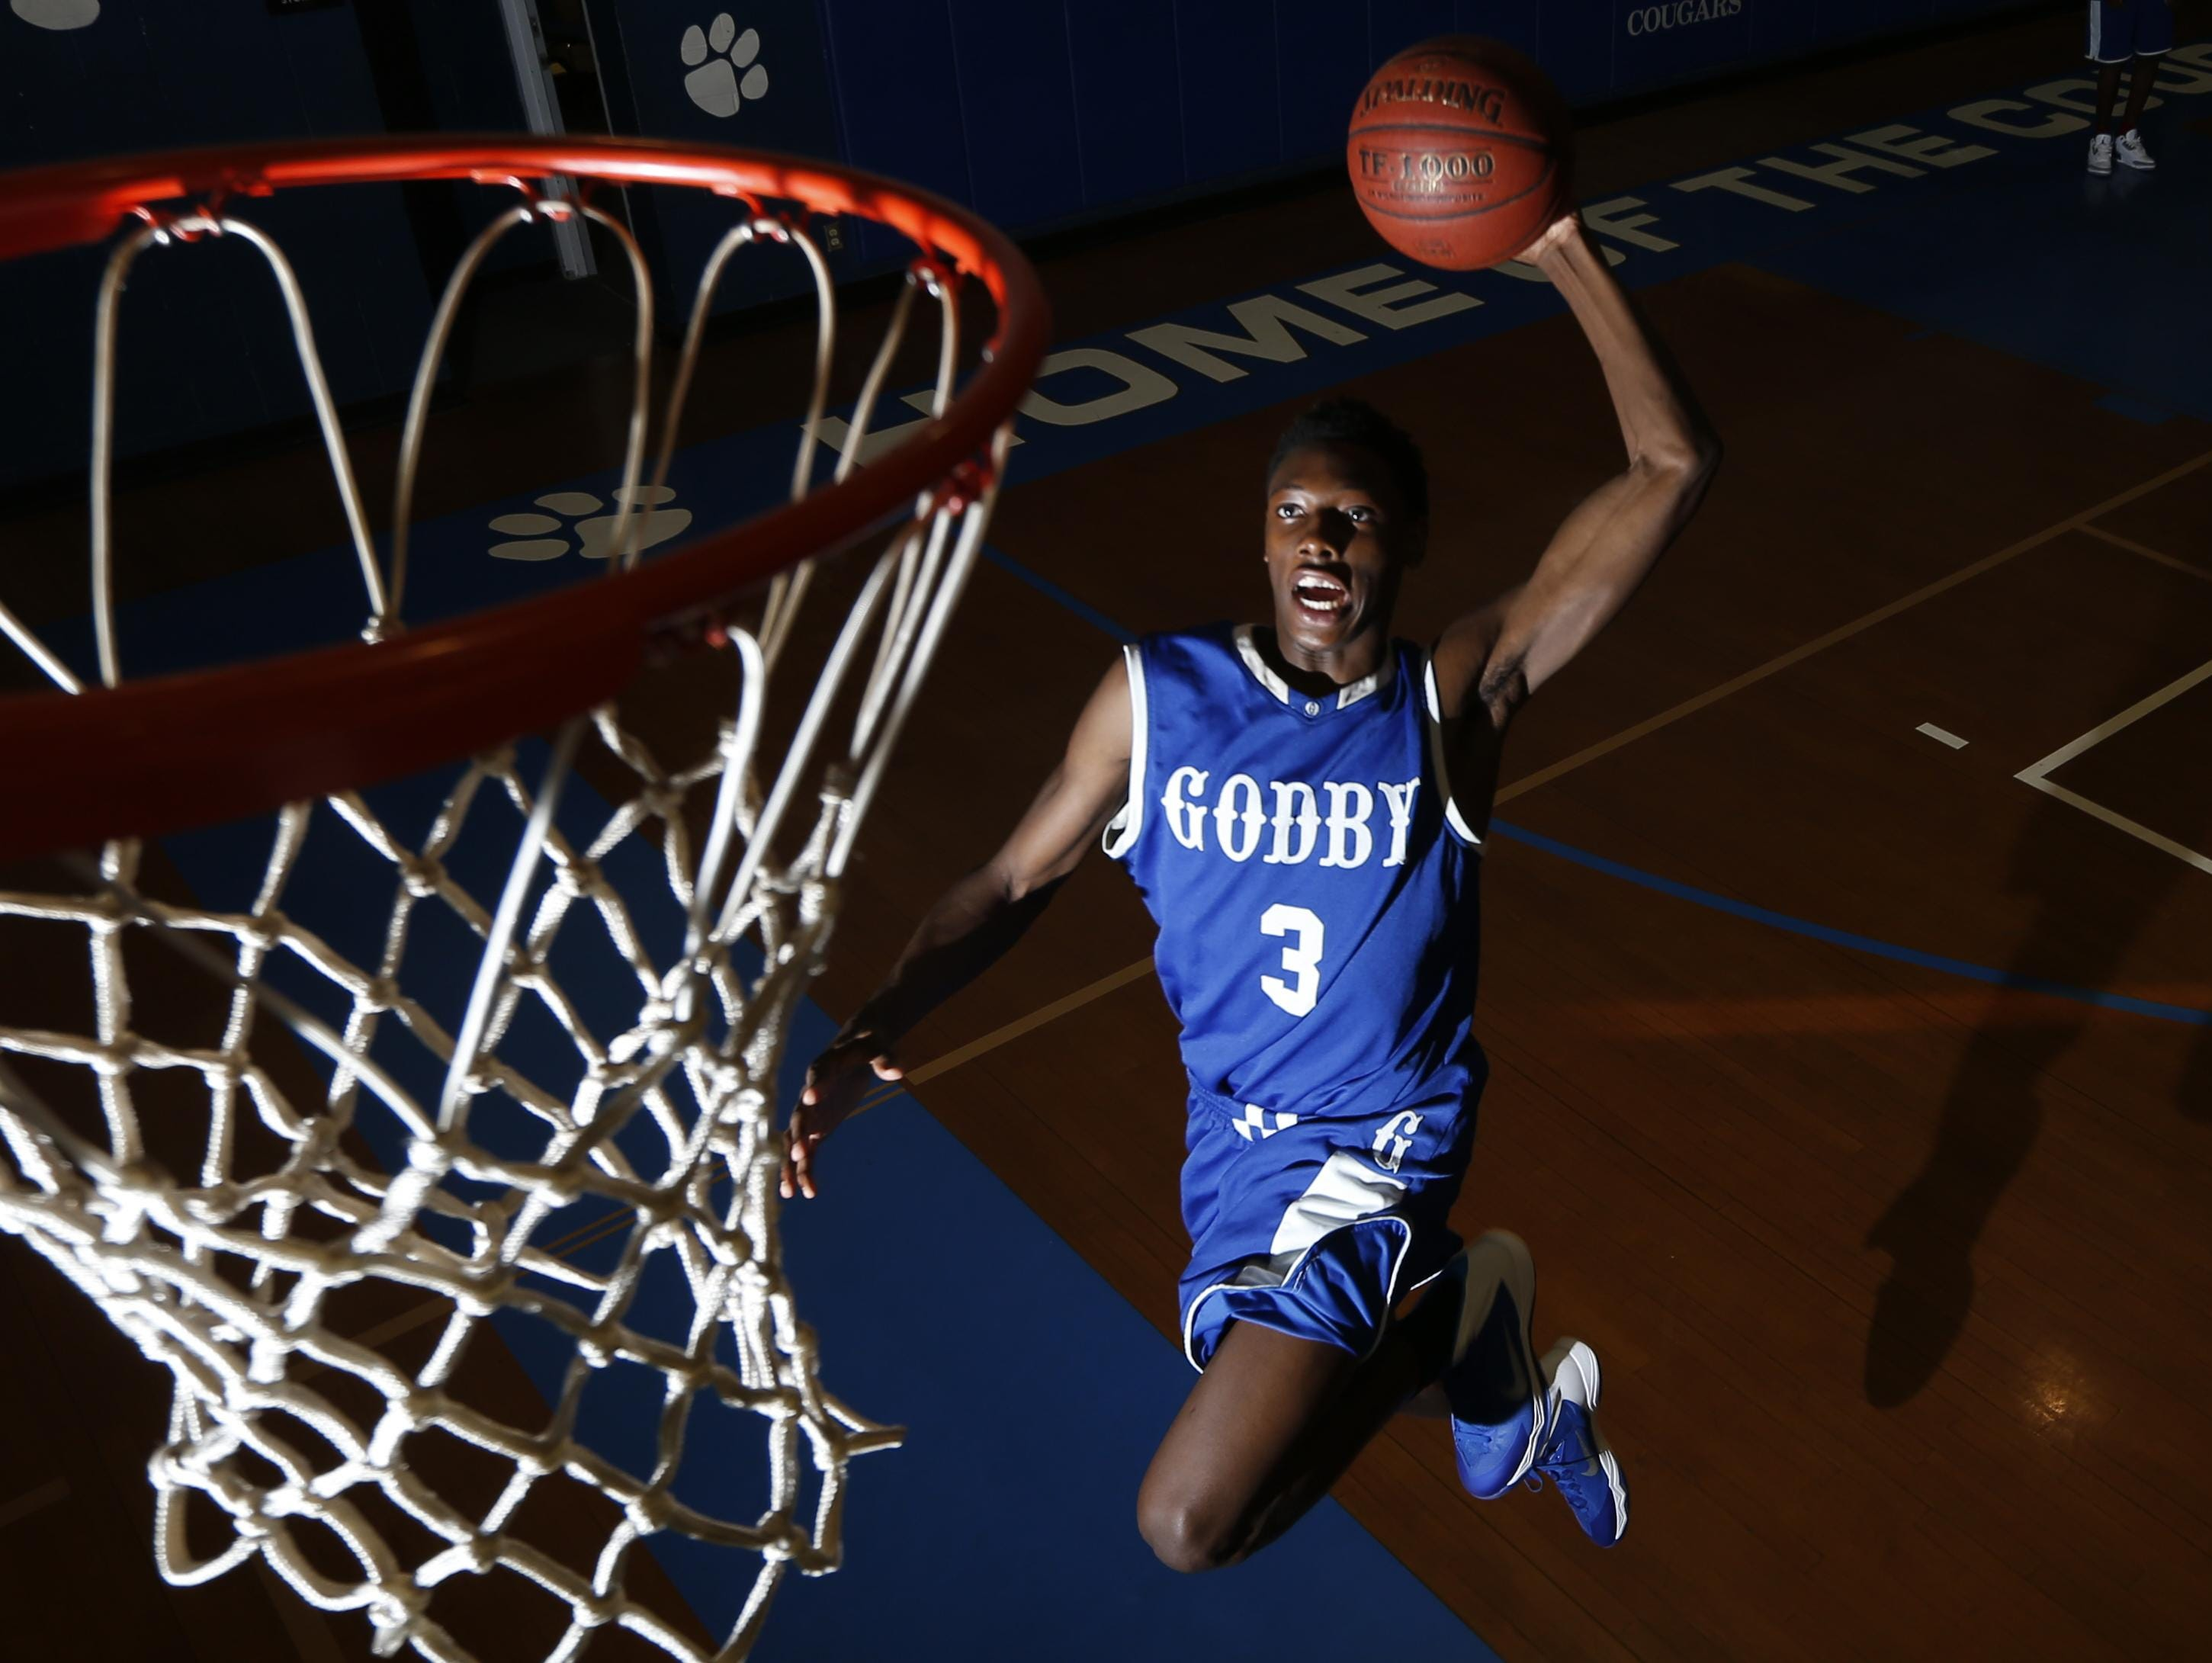 Godby senior Quan Jackson averaged 13 points per game to help the top-ranked and undefeated Cougars (31-0) win the Class 4A state title. He was named the 2015 All-Big Bend Co-Player of the Year.